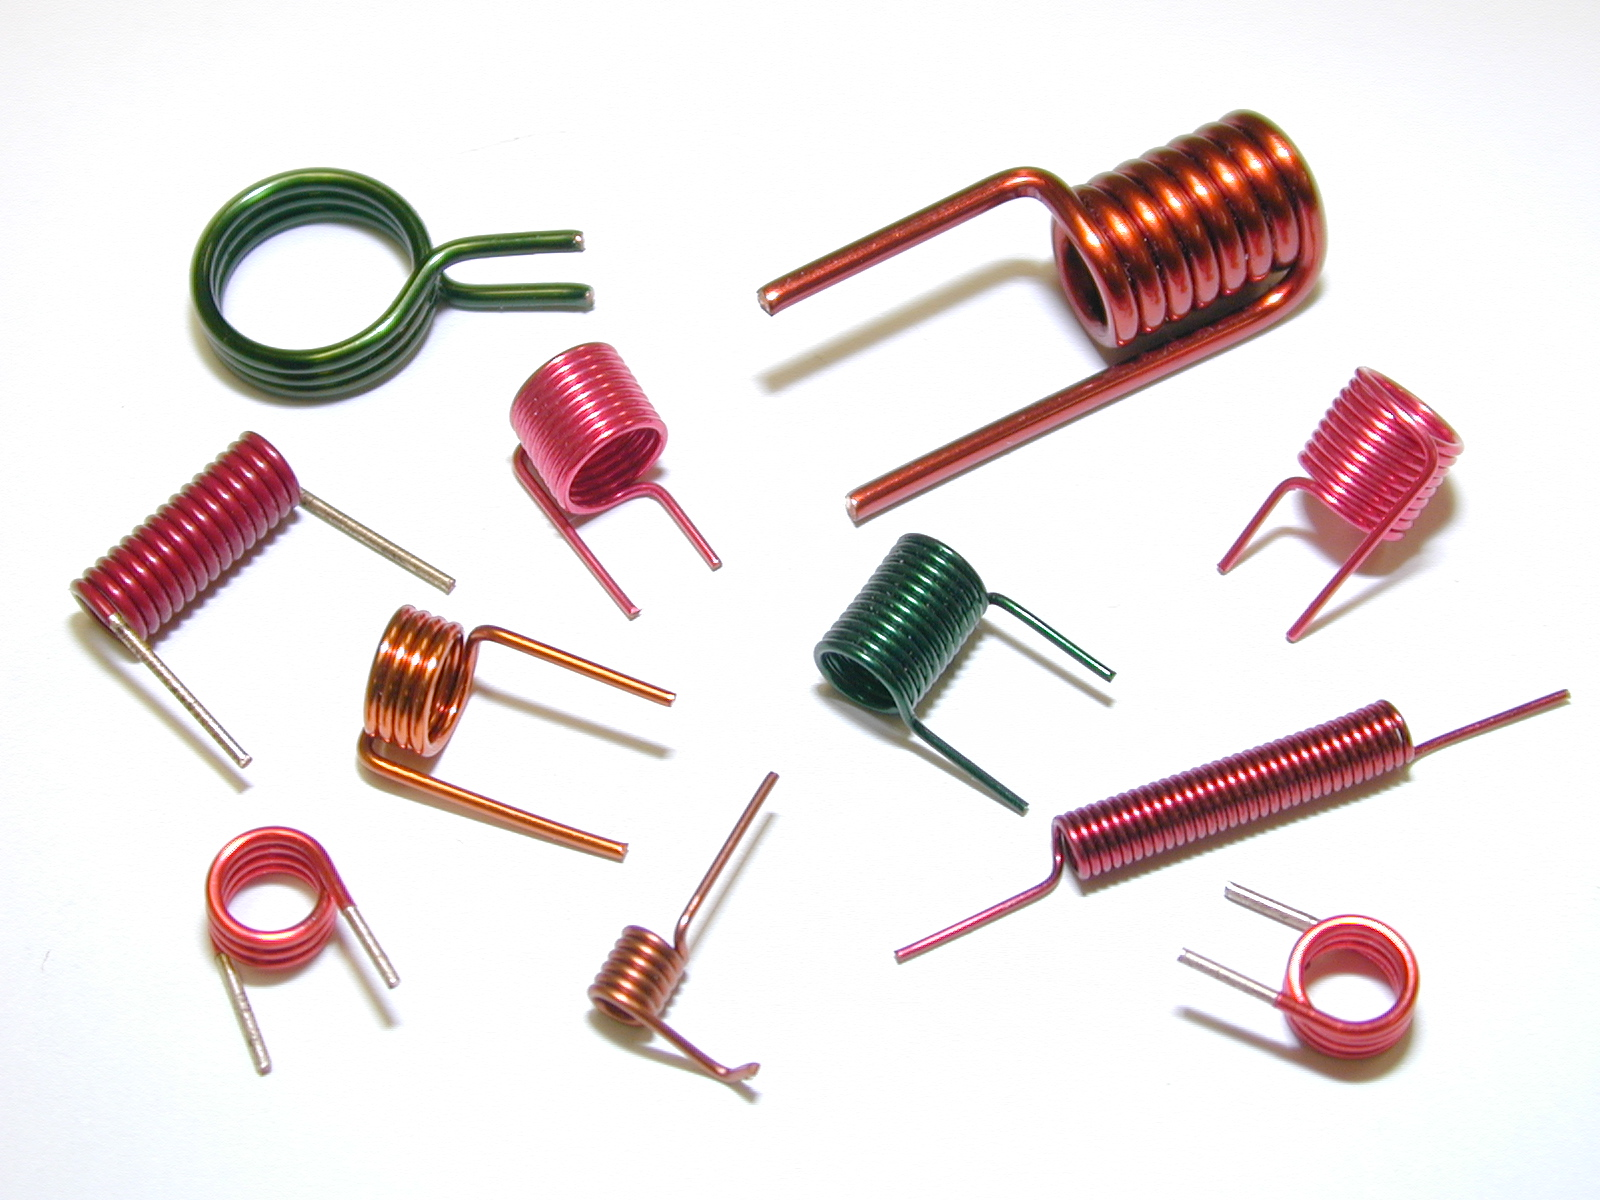 Air Wound Coils Rowley Spring And Stamping Corp Use Of Inductor In A Circuit Also Known As Core Are Type That Do Not Magnetic Composed Ferromagnetic Material